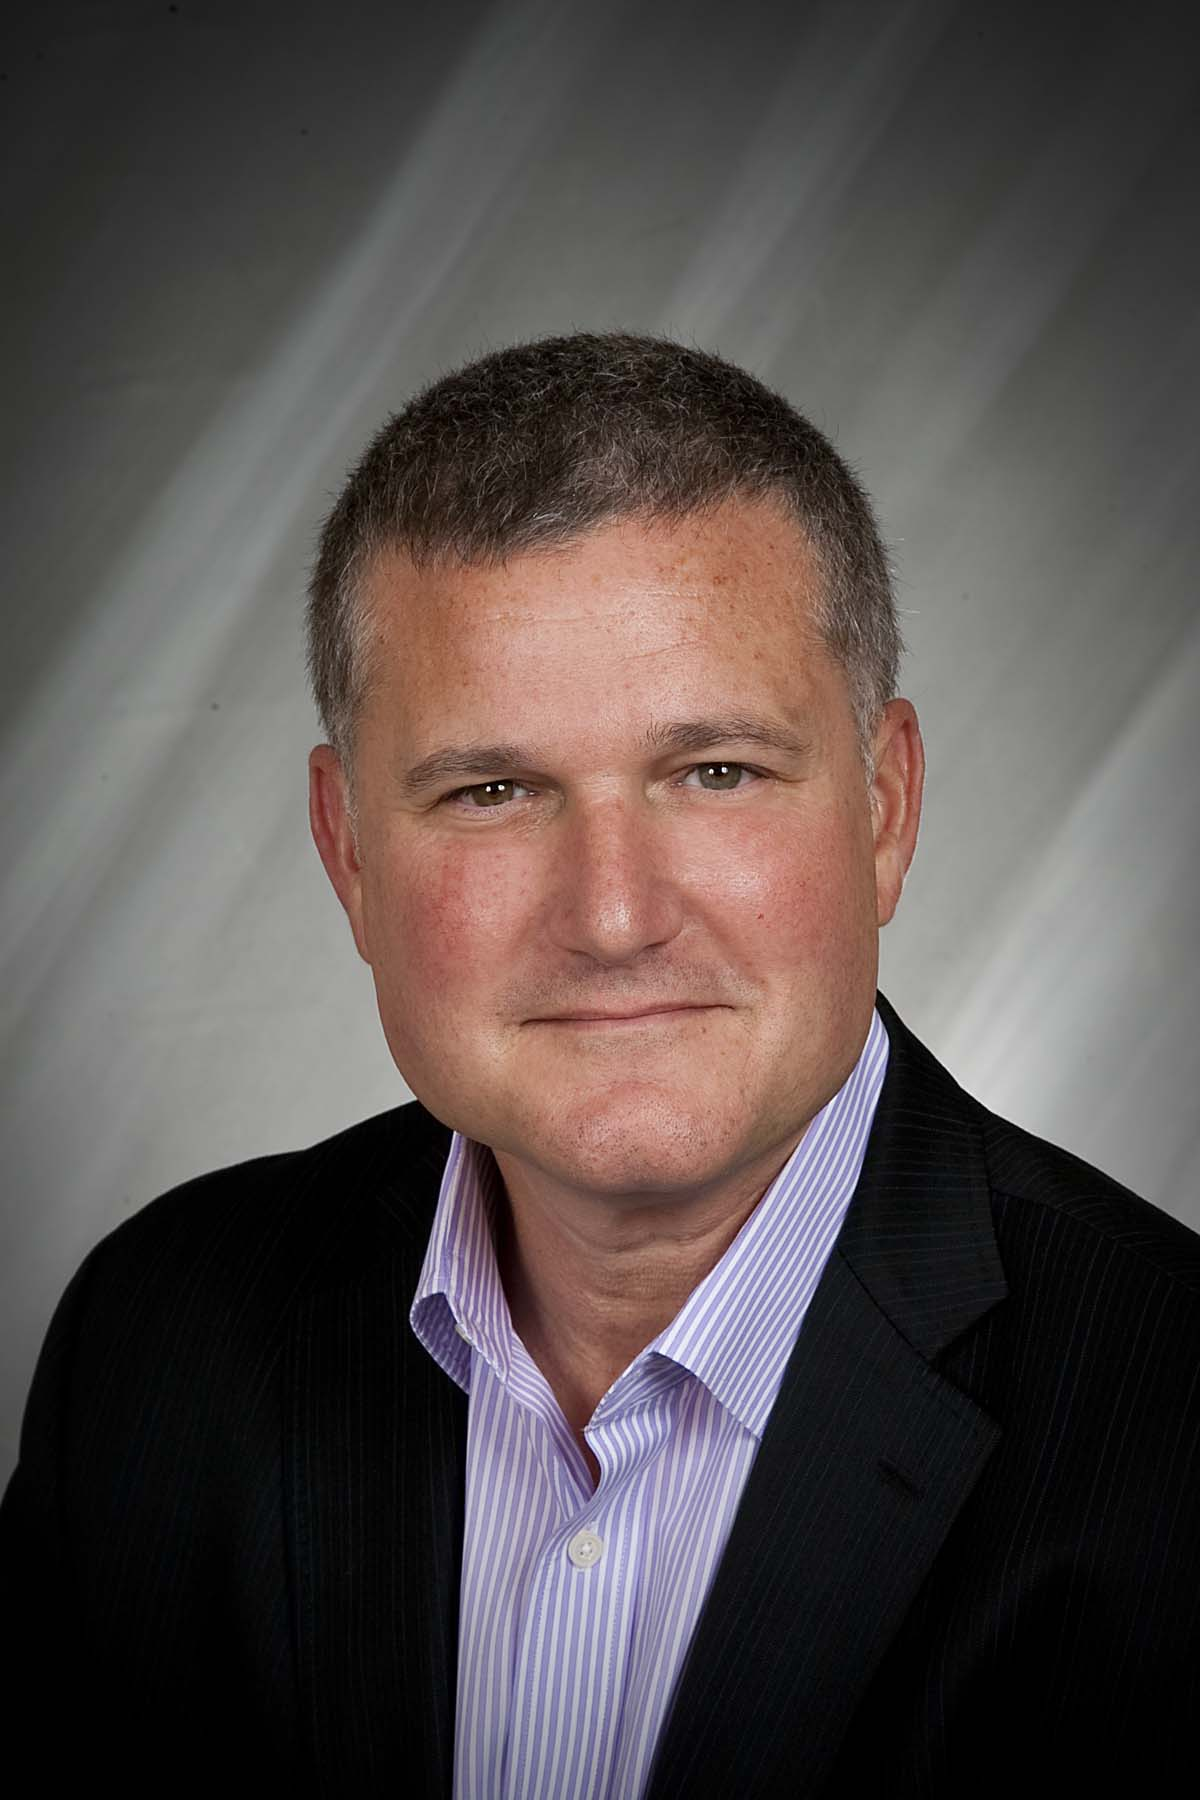 Hasbro Appoints Stephen Davis To Chief Content Officer